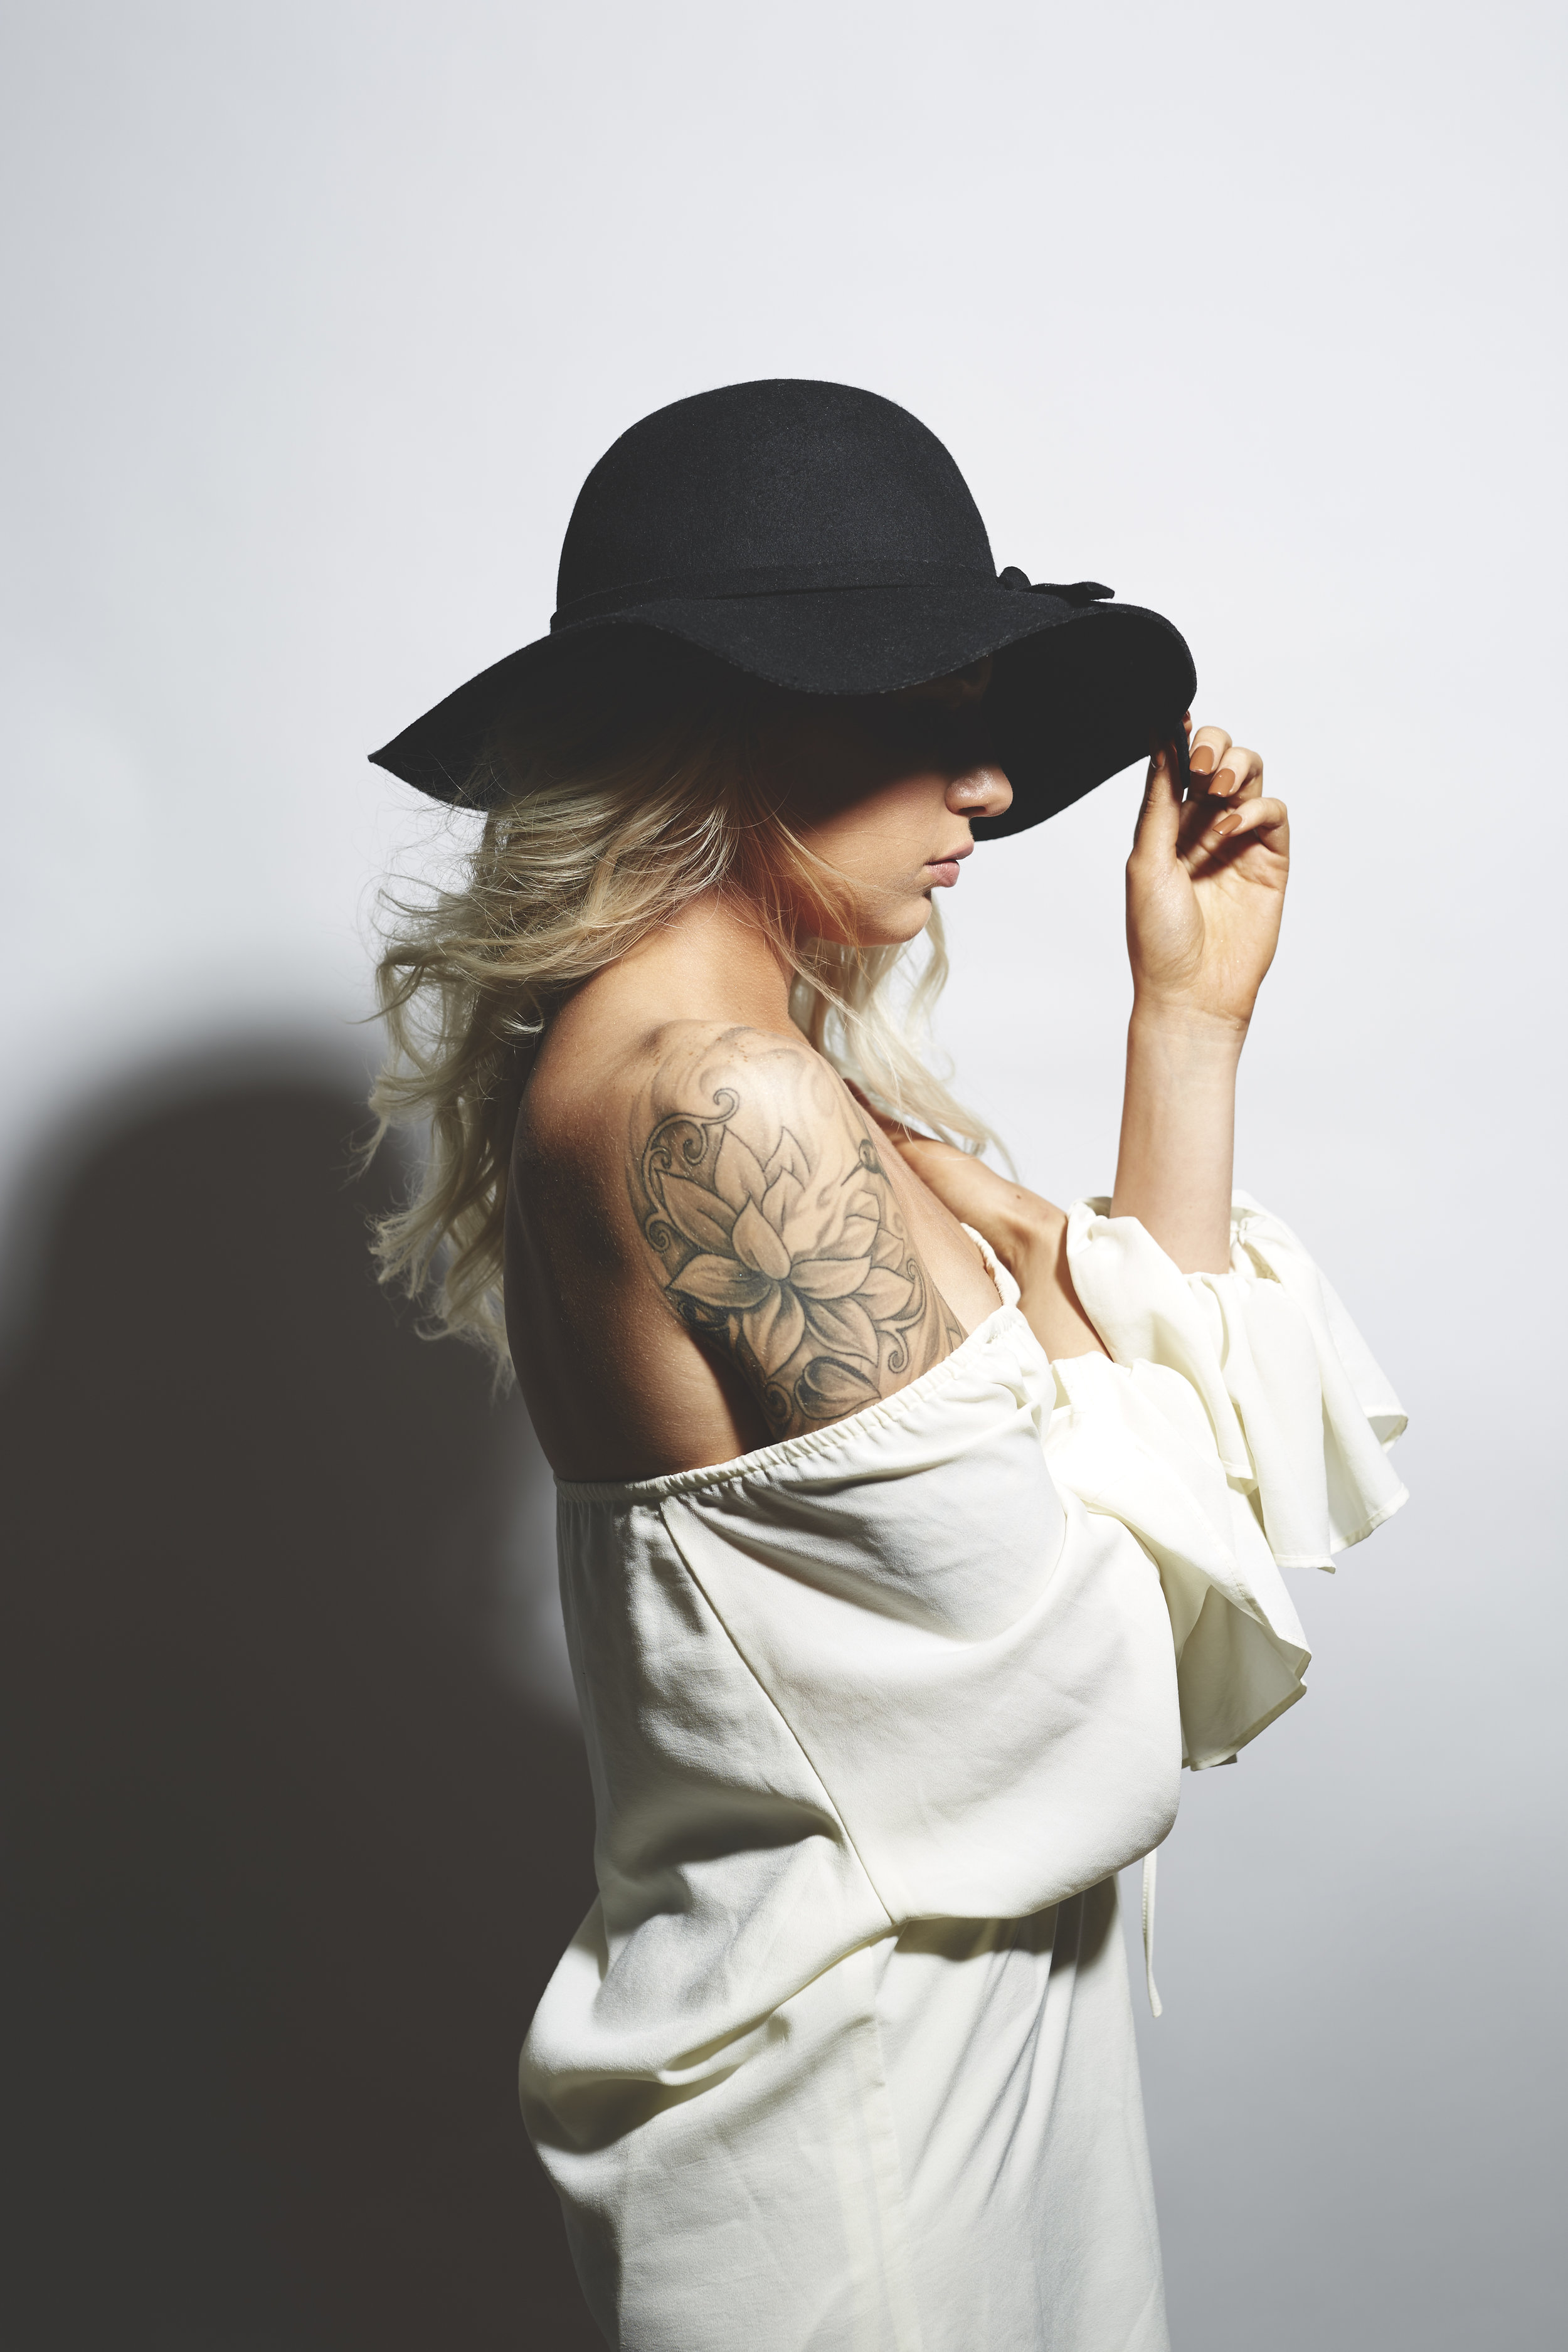 studio lights on model in sunhat with tattoos